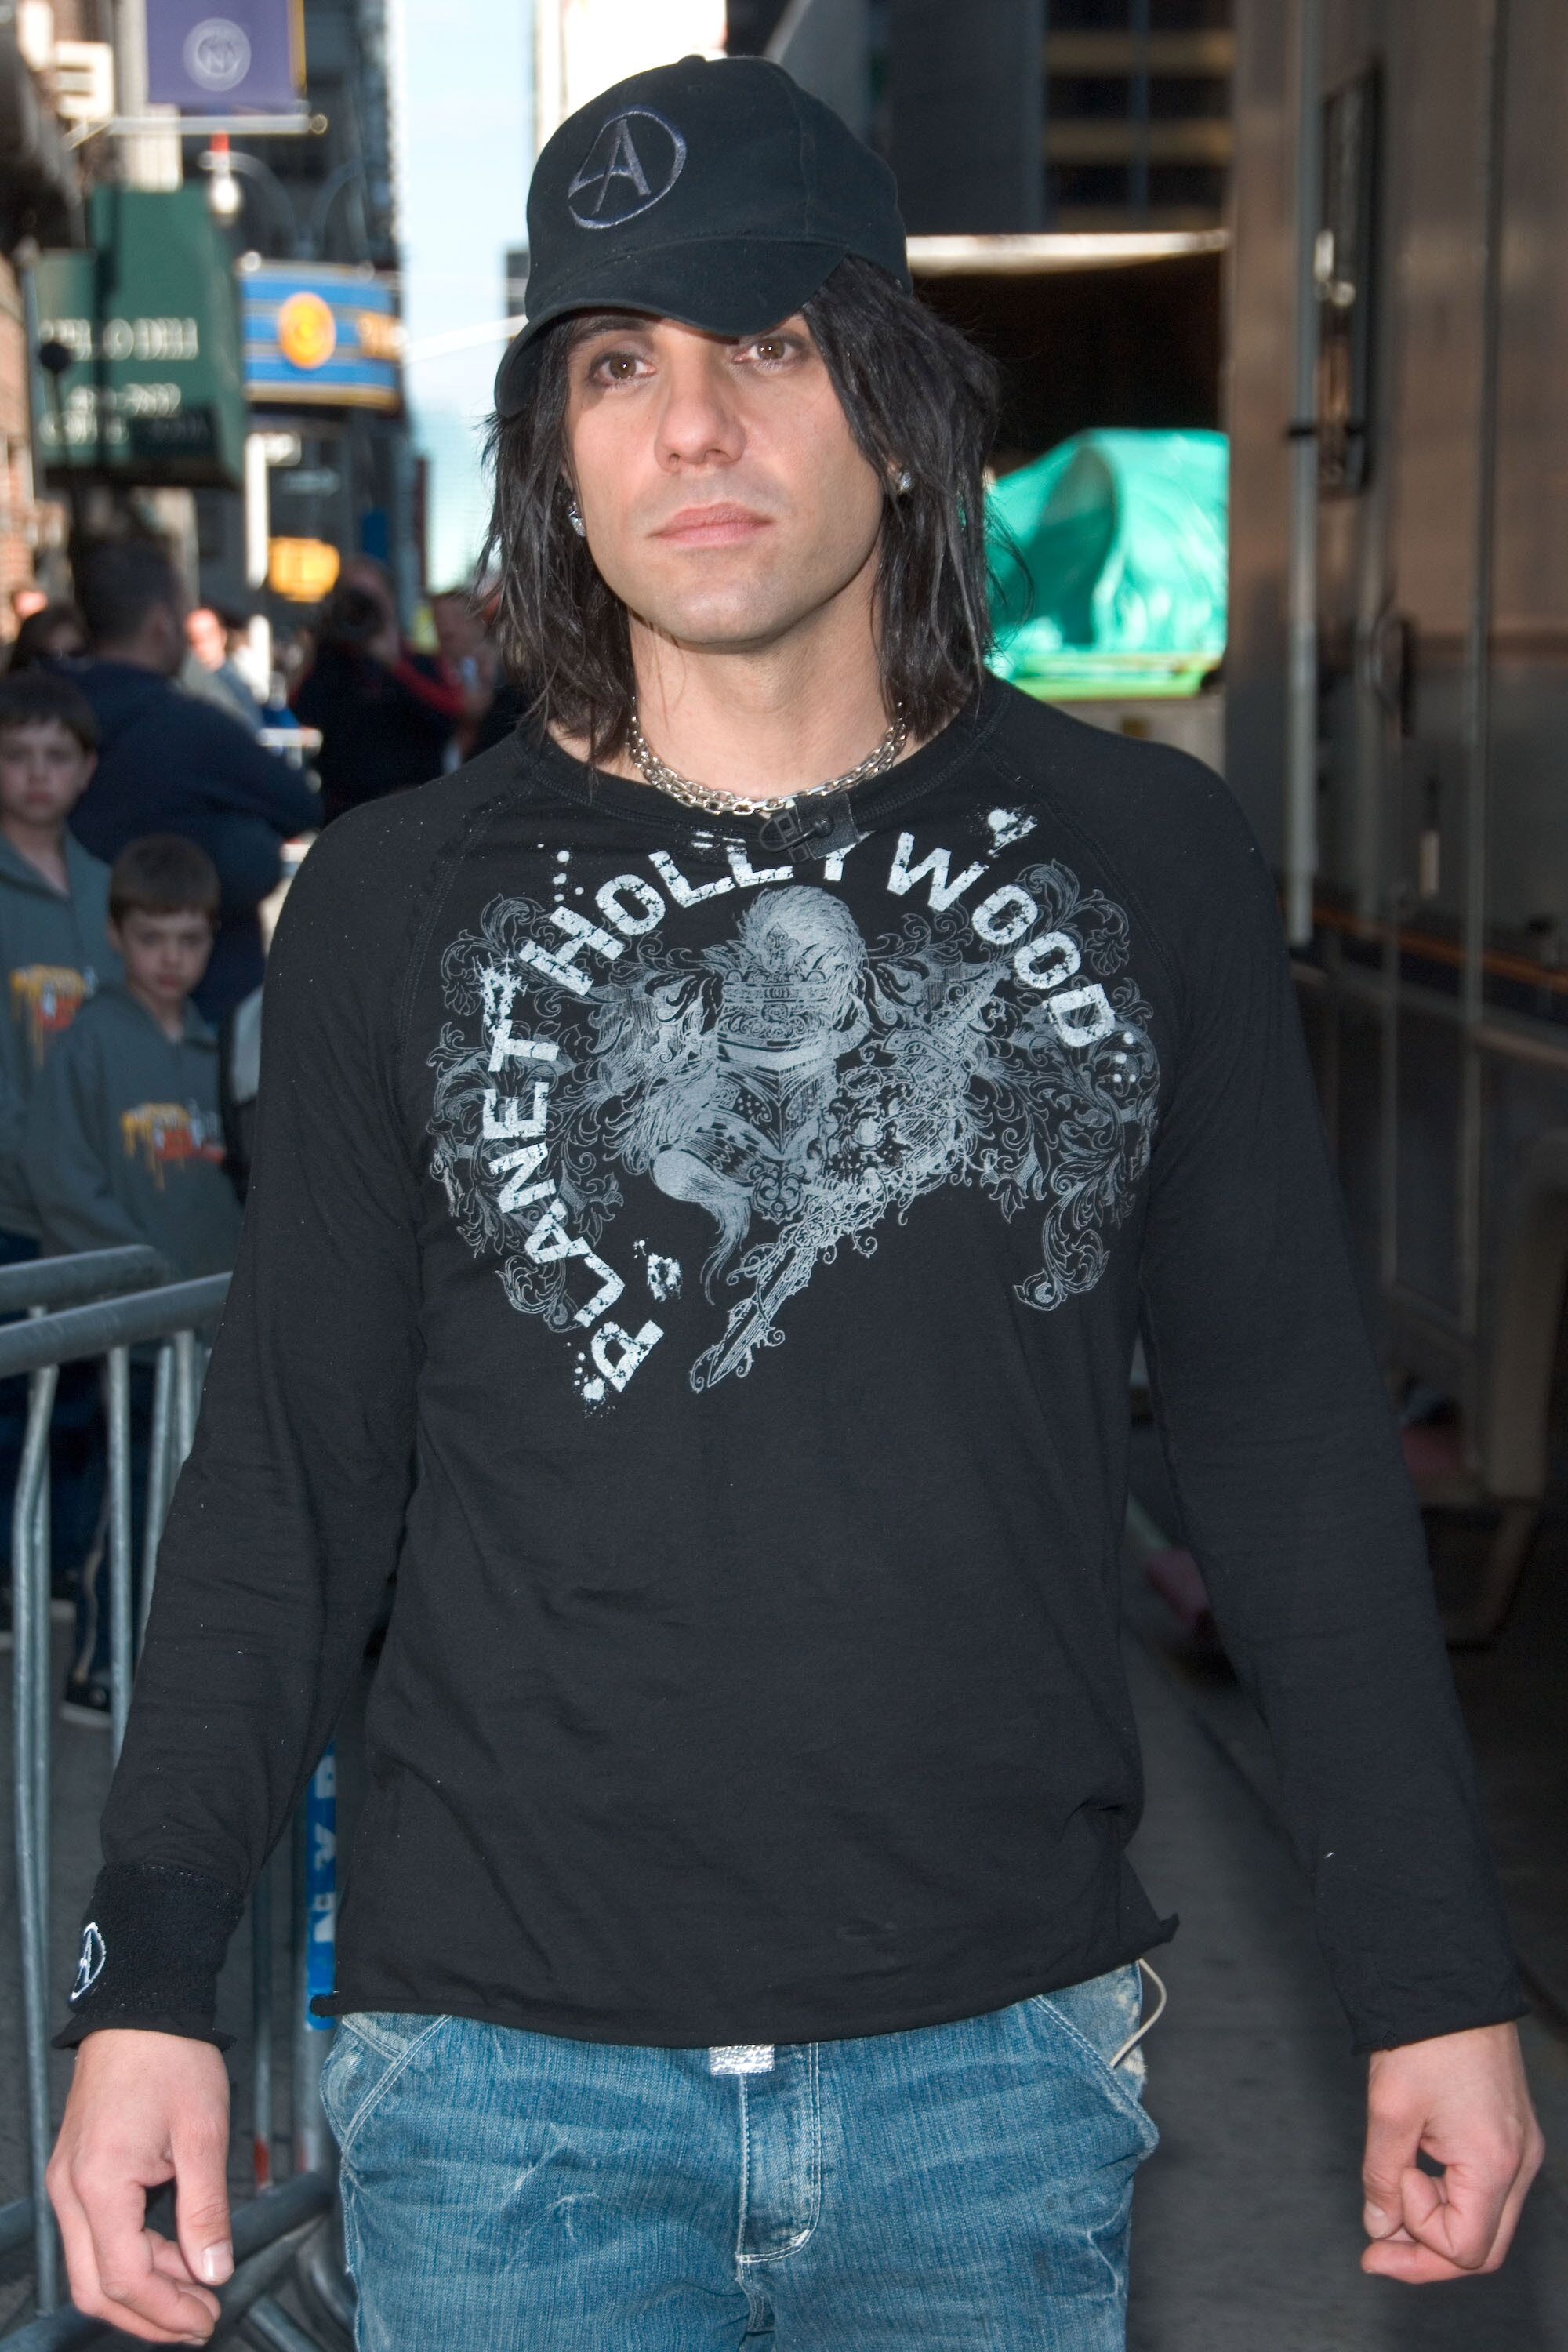 Illusionist and musician Criss Angel at Planet Hollywood in Las Vegas | Source: Getty Images